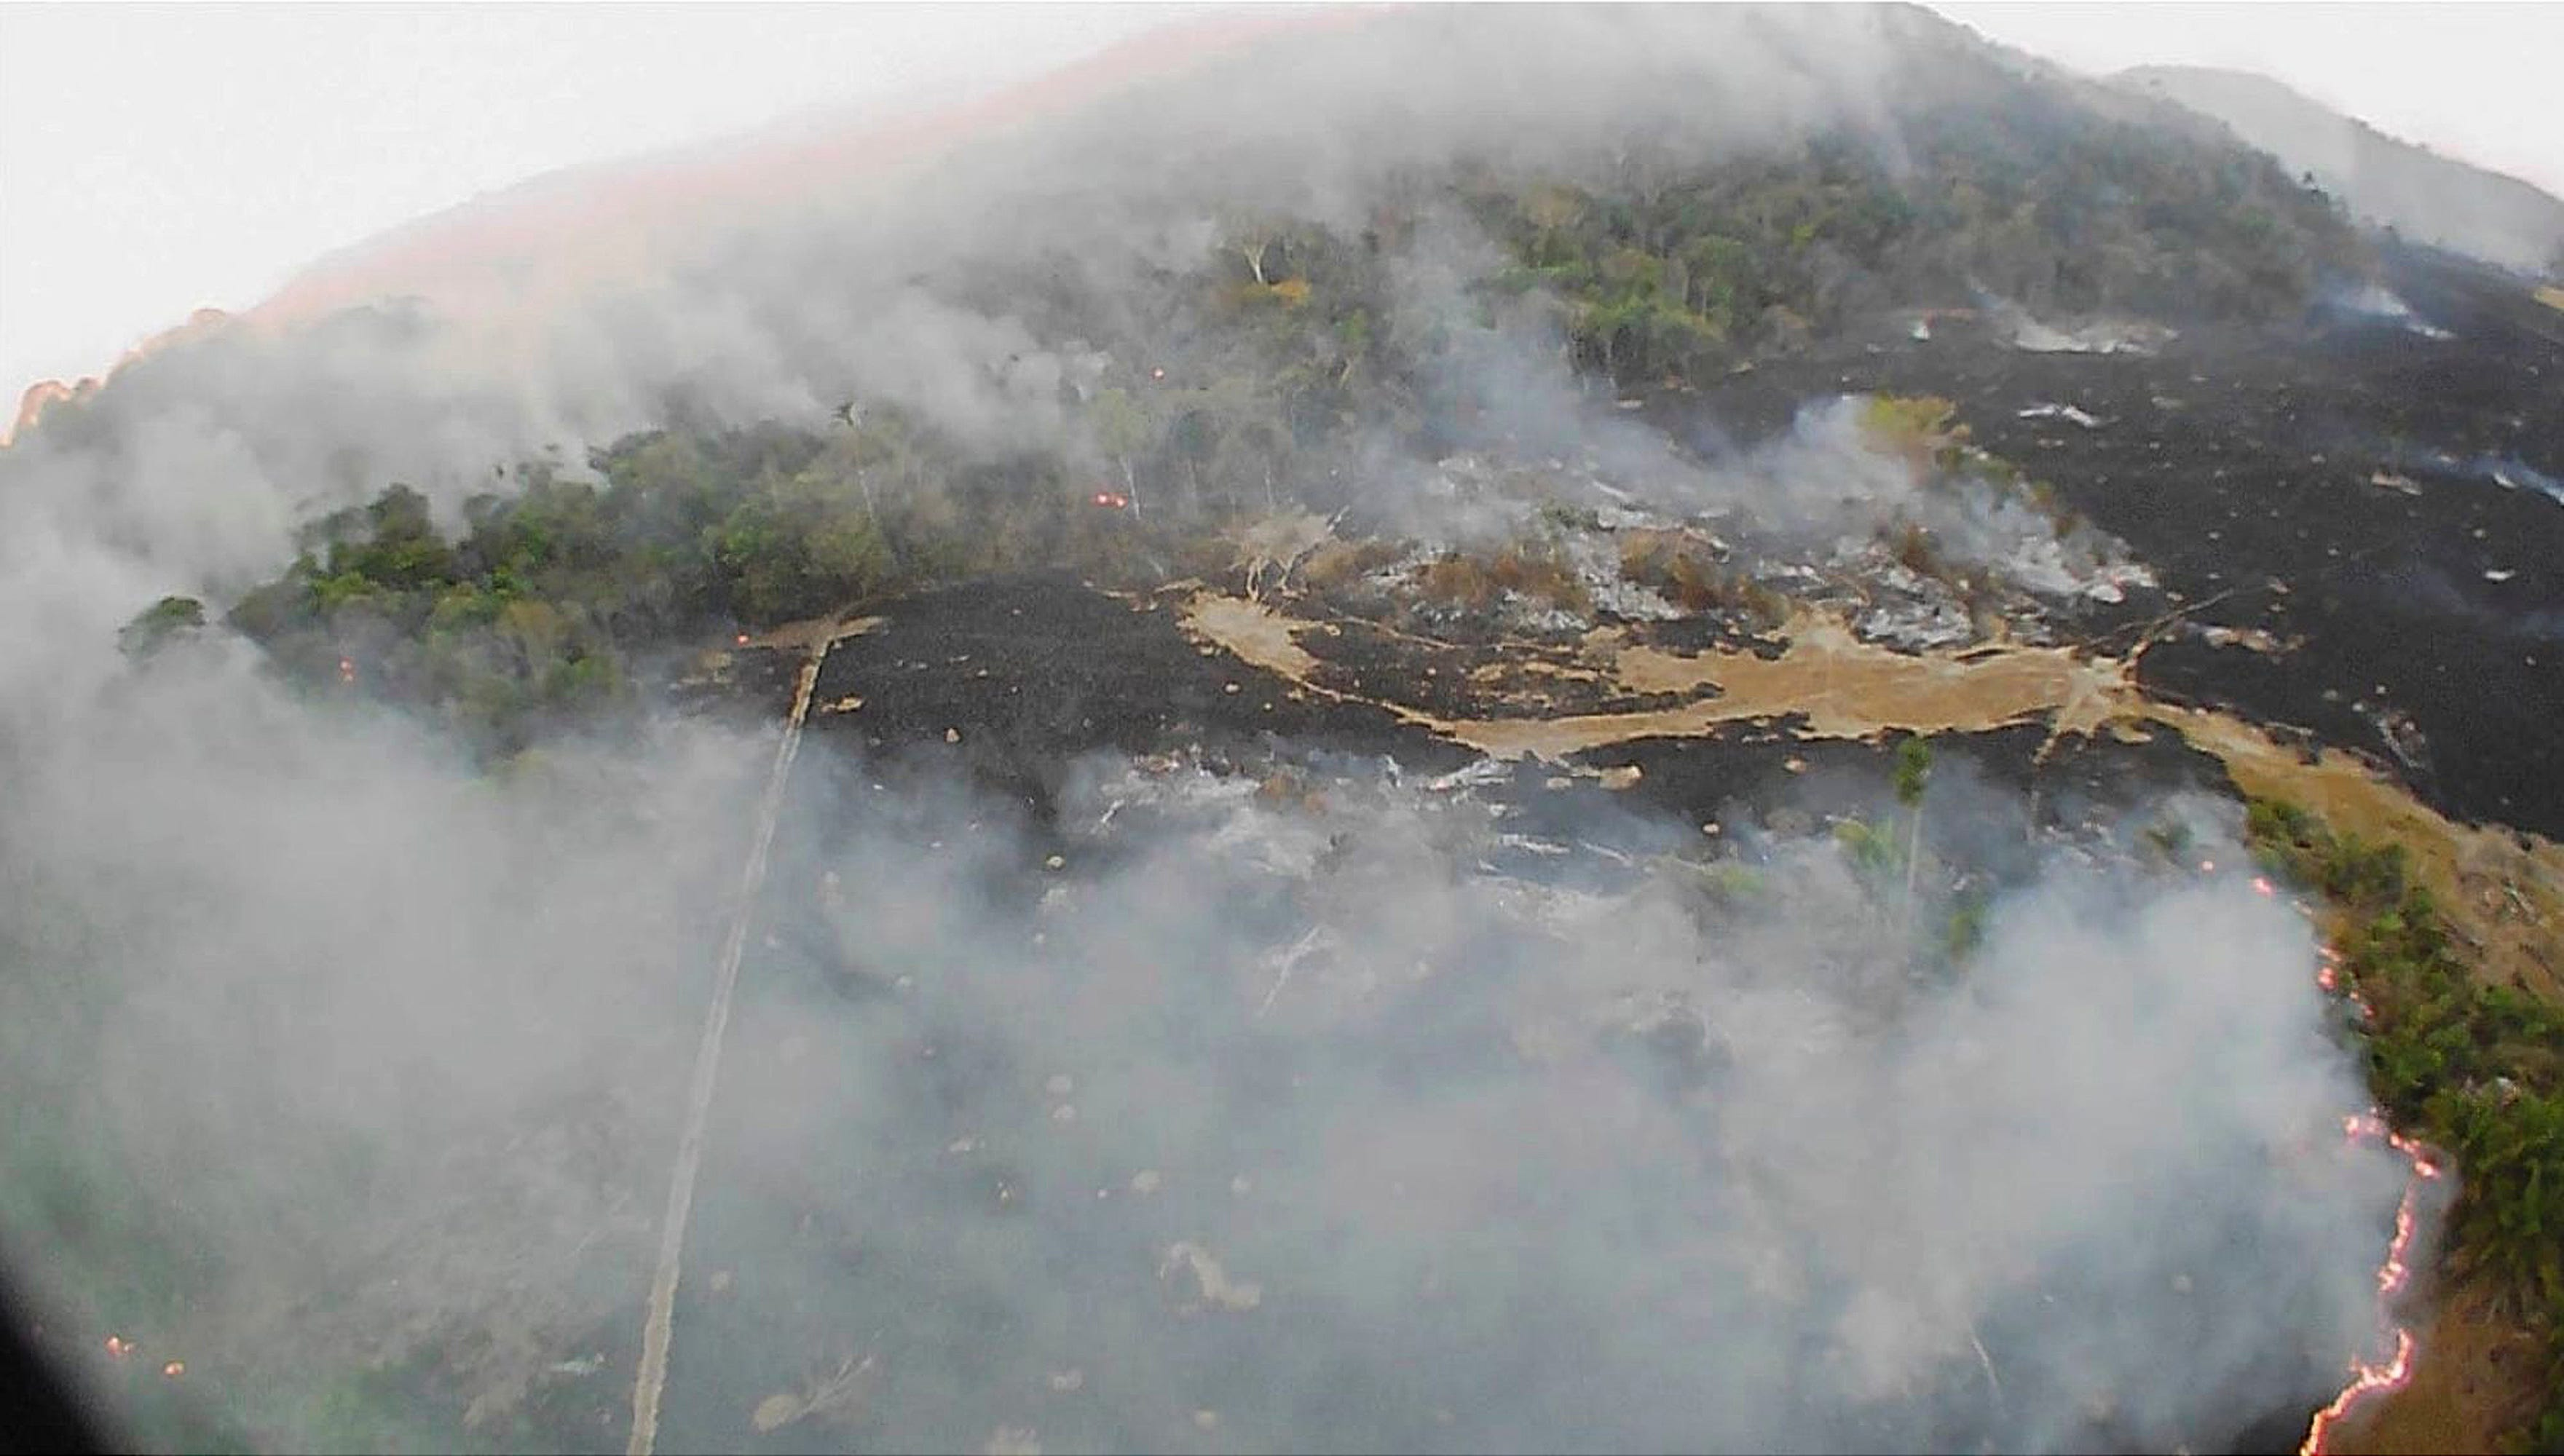 Environmental Horror & Political Scandal: What You Need To Know About The Amazon Rainforest Fires